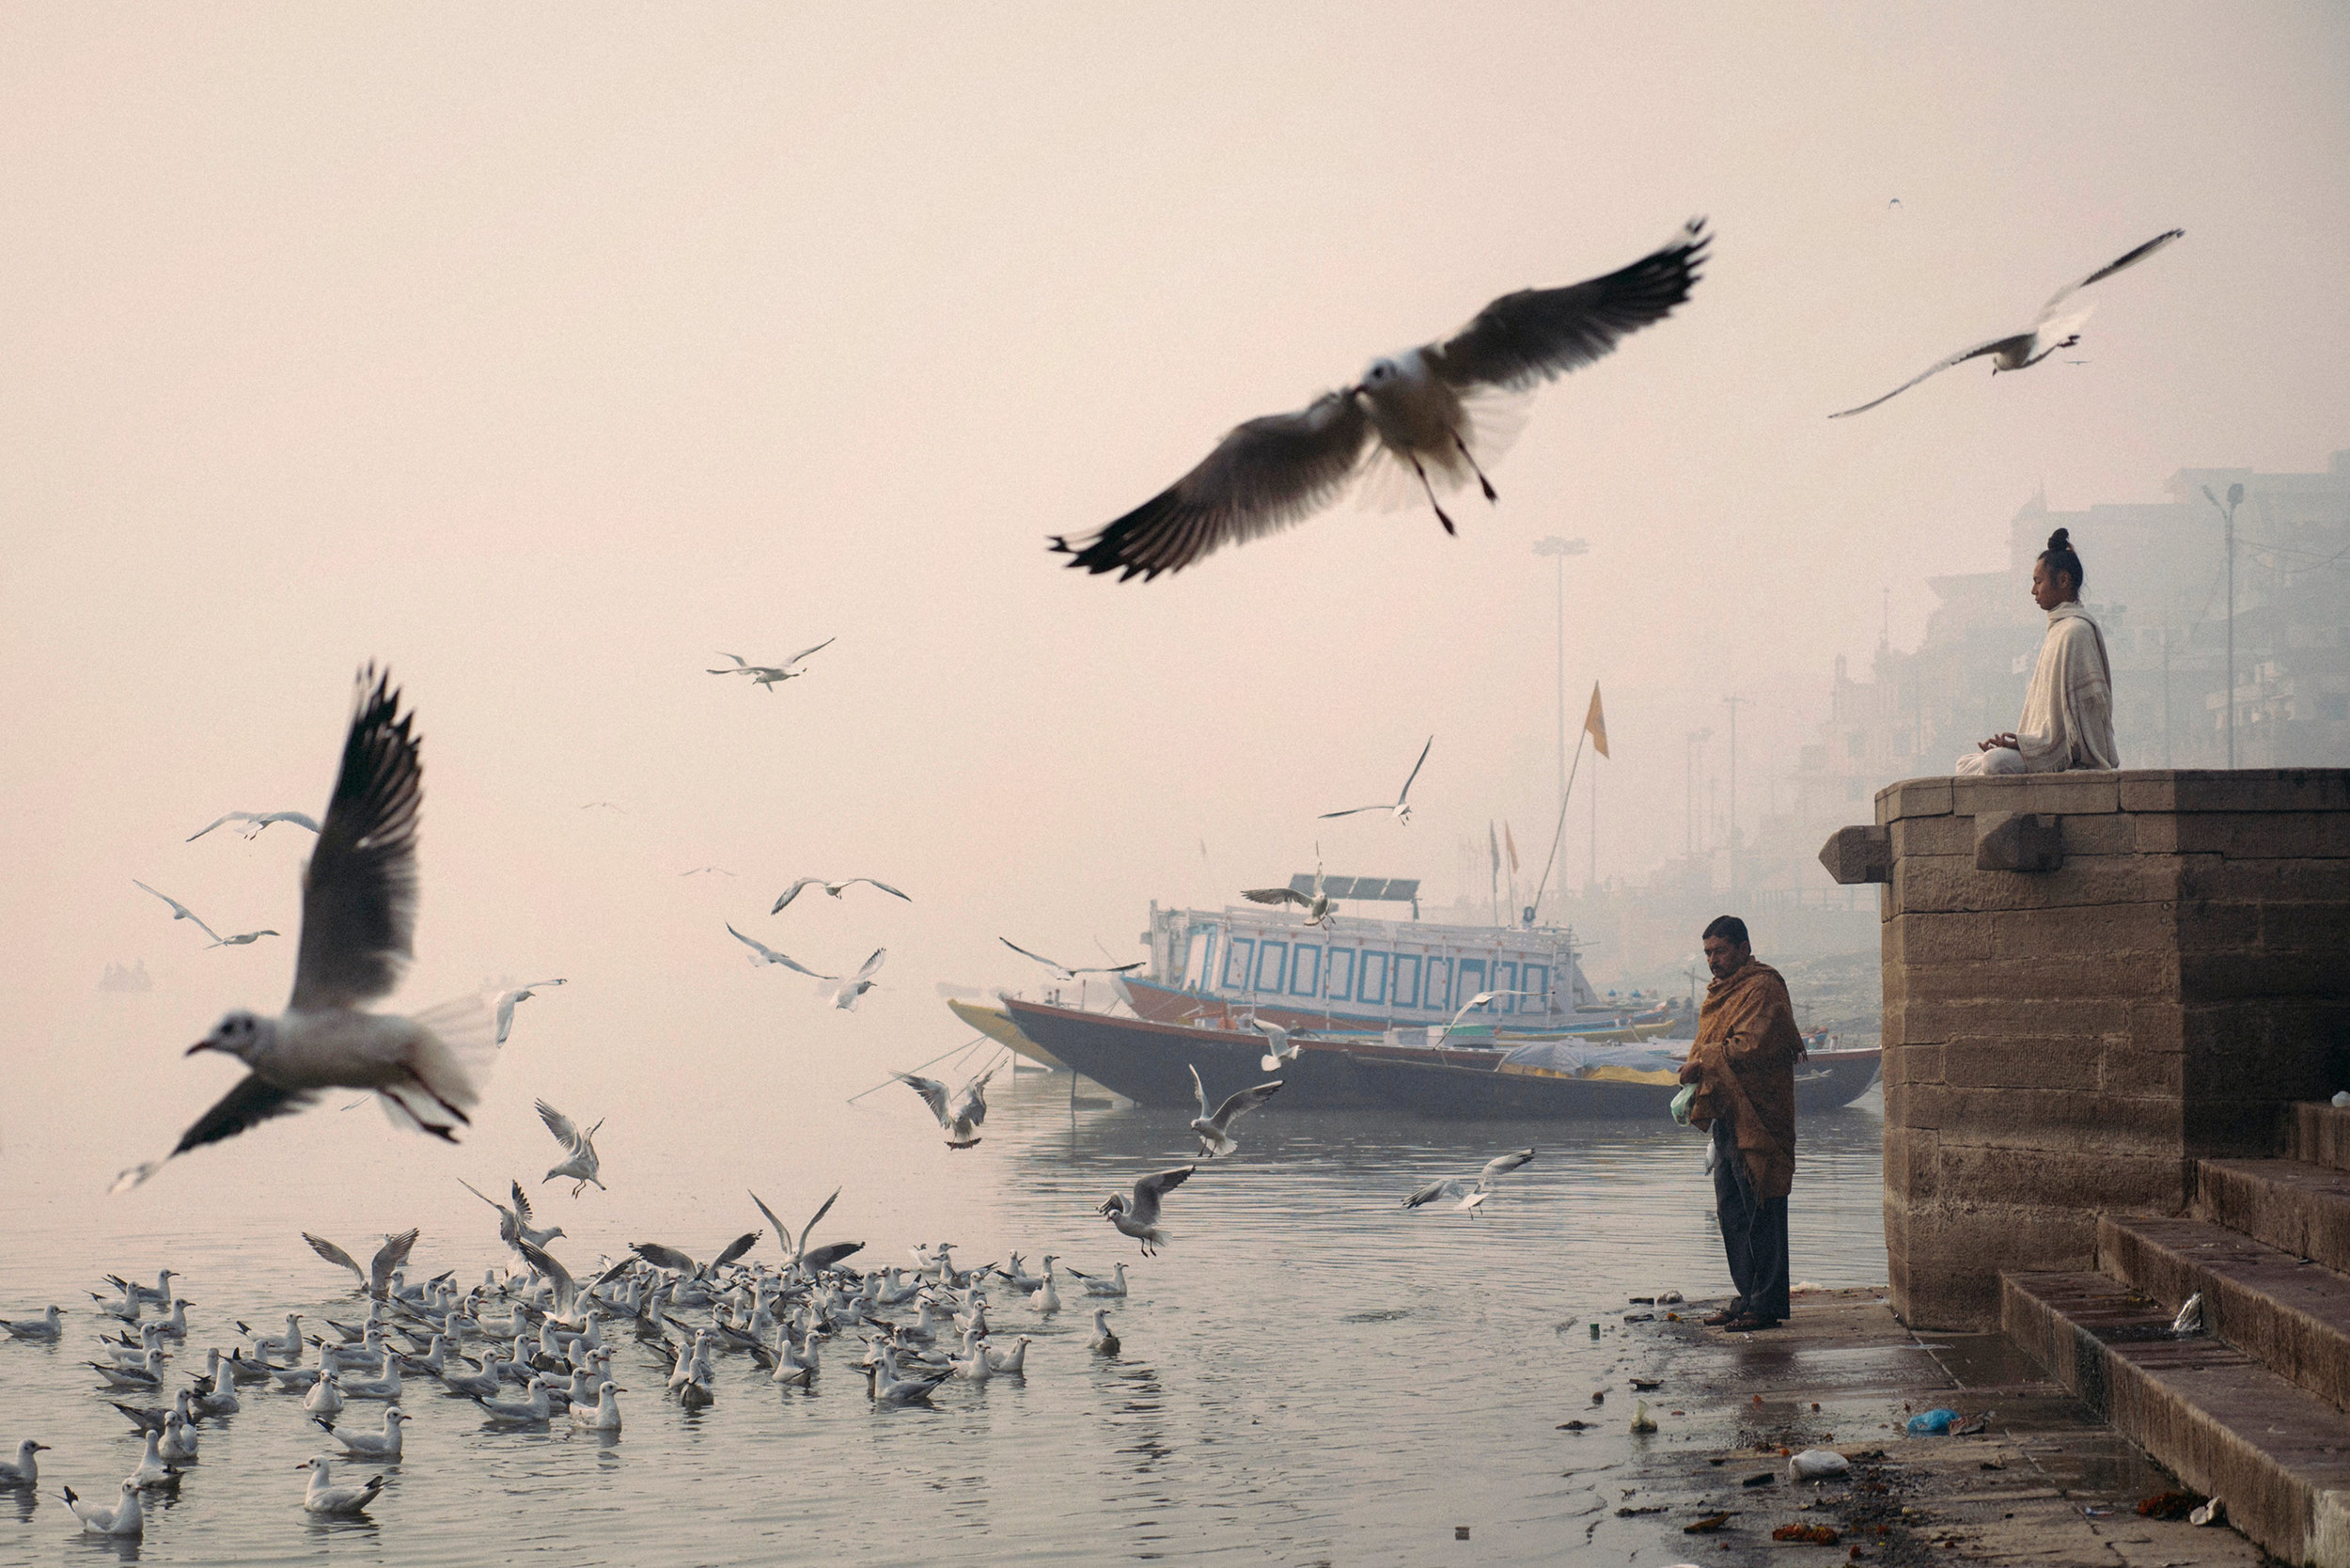 Varanasi, India - 2014 | Panasonic GX7, ISO 250, 12-35mm, f/2.8 at 35mm, 1/3200s